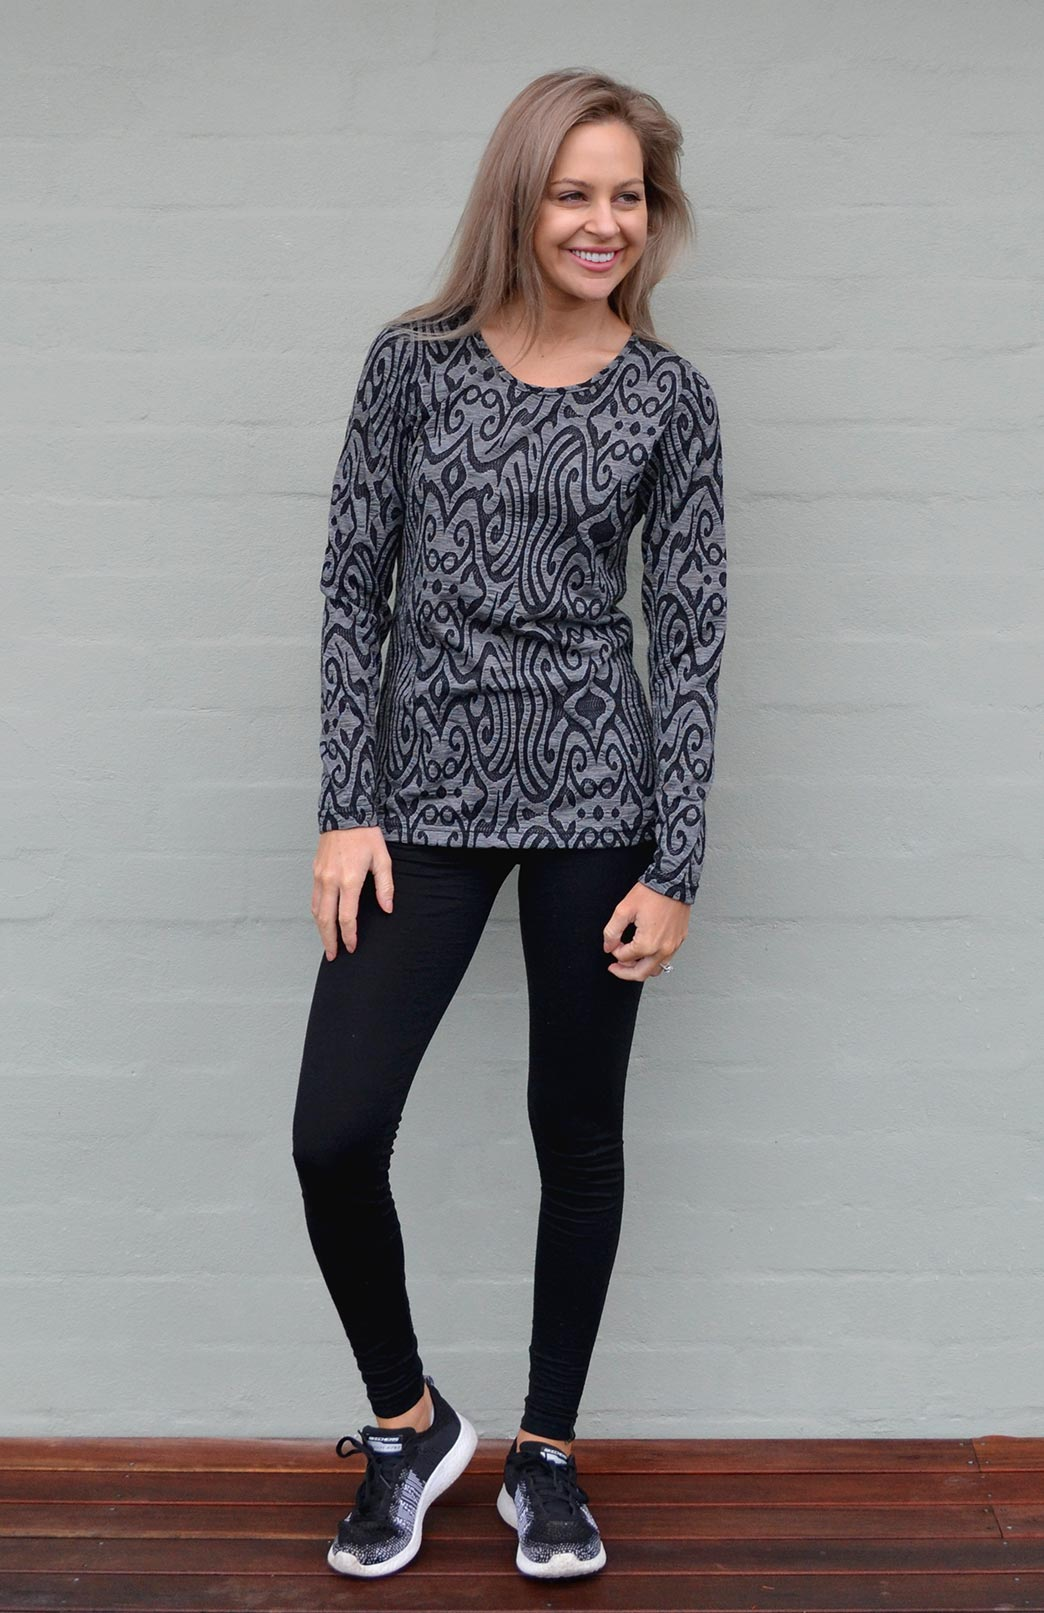 Round Neck Top - Patterned - Women's Black and Grey Inca Swirl Patterned Long Sleeve Merino Wool Thermal Fashion Top - Smitten Merino Tasmania Australia